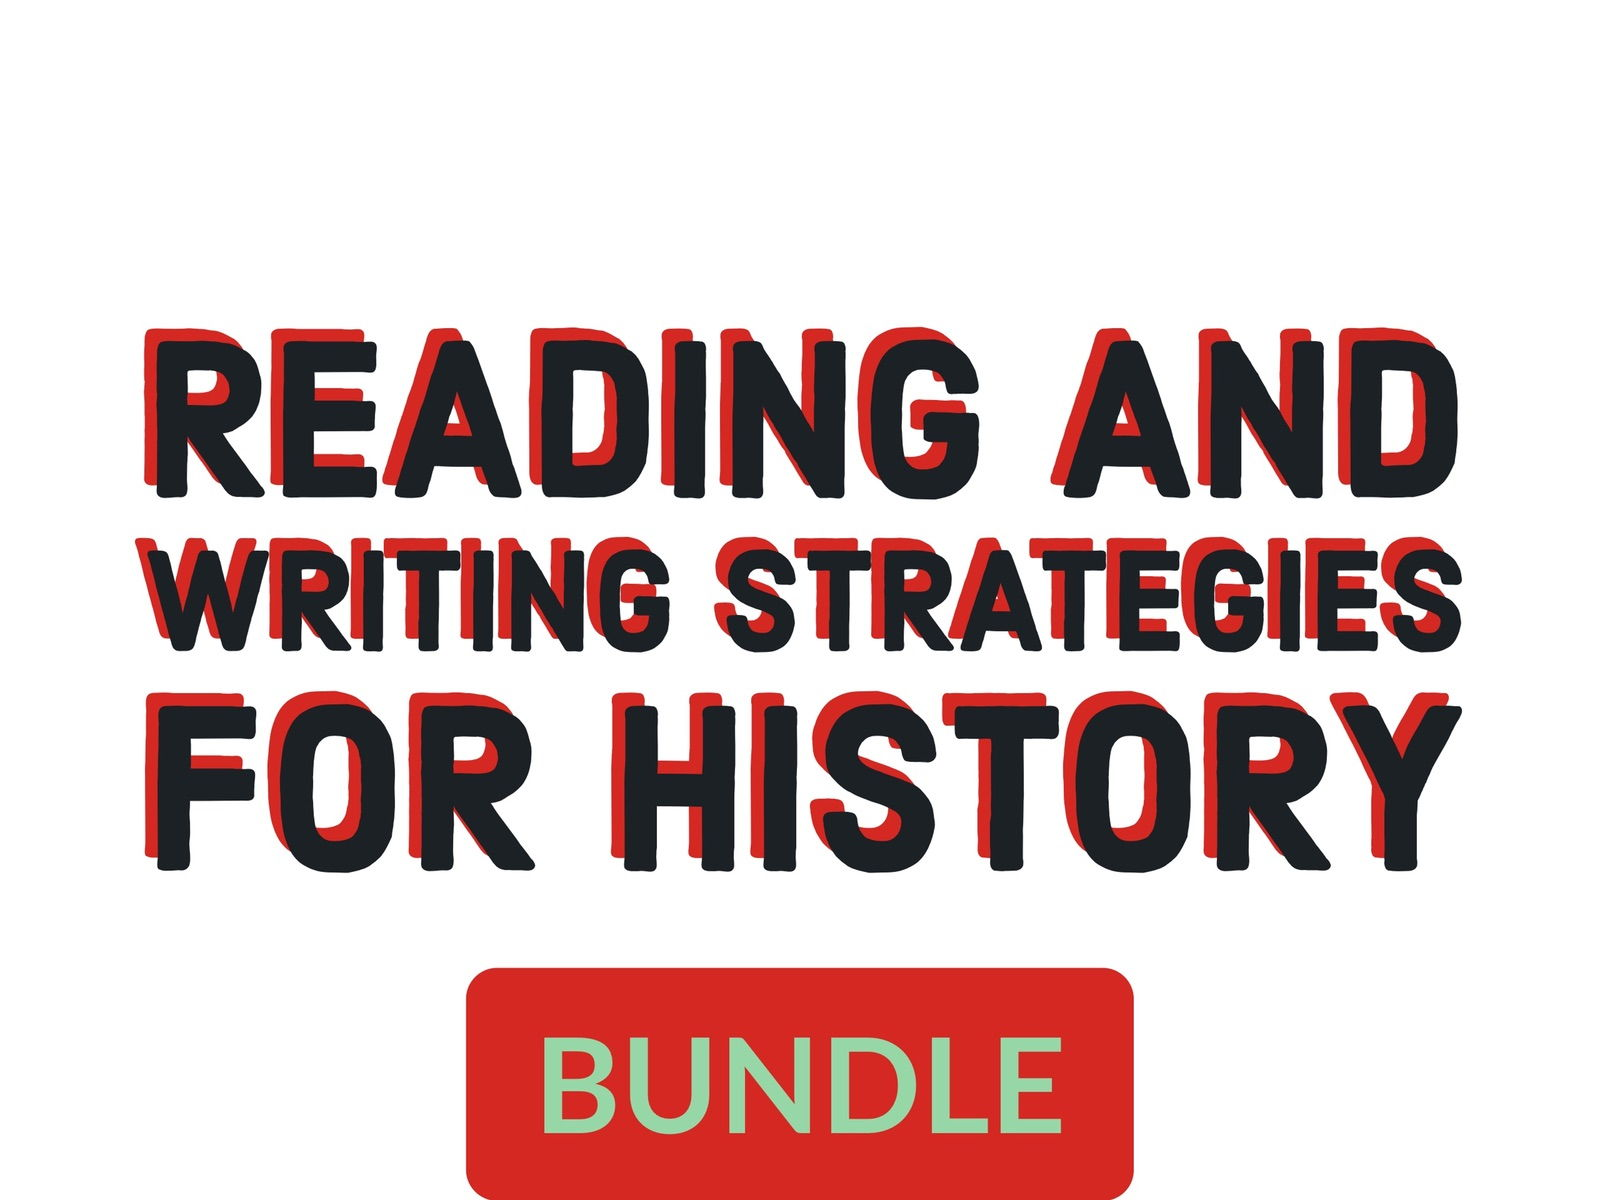 Reading and Writing Strategies for History